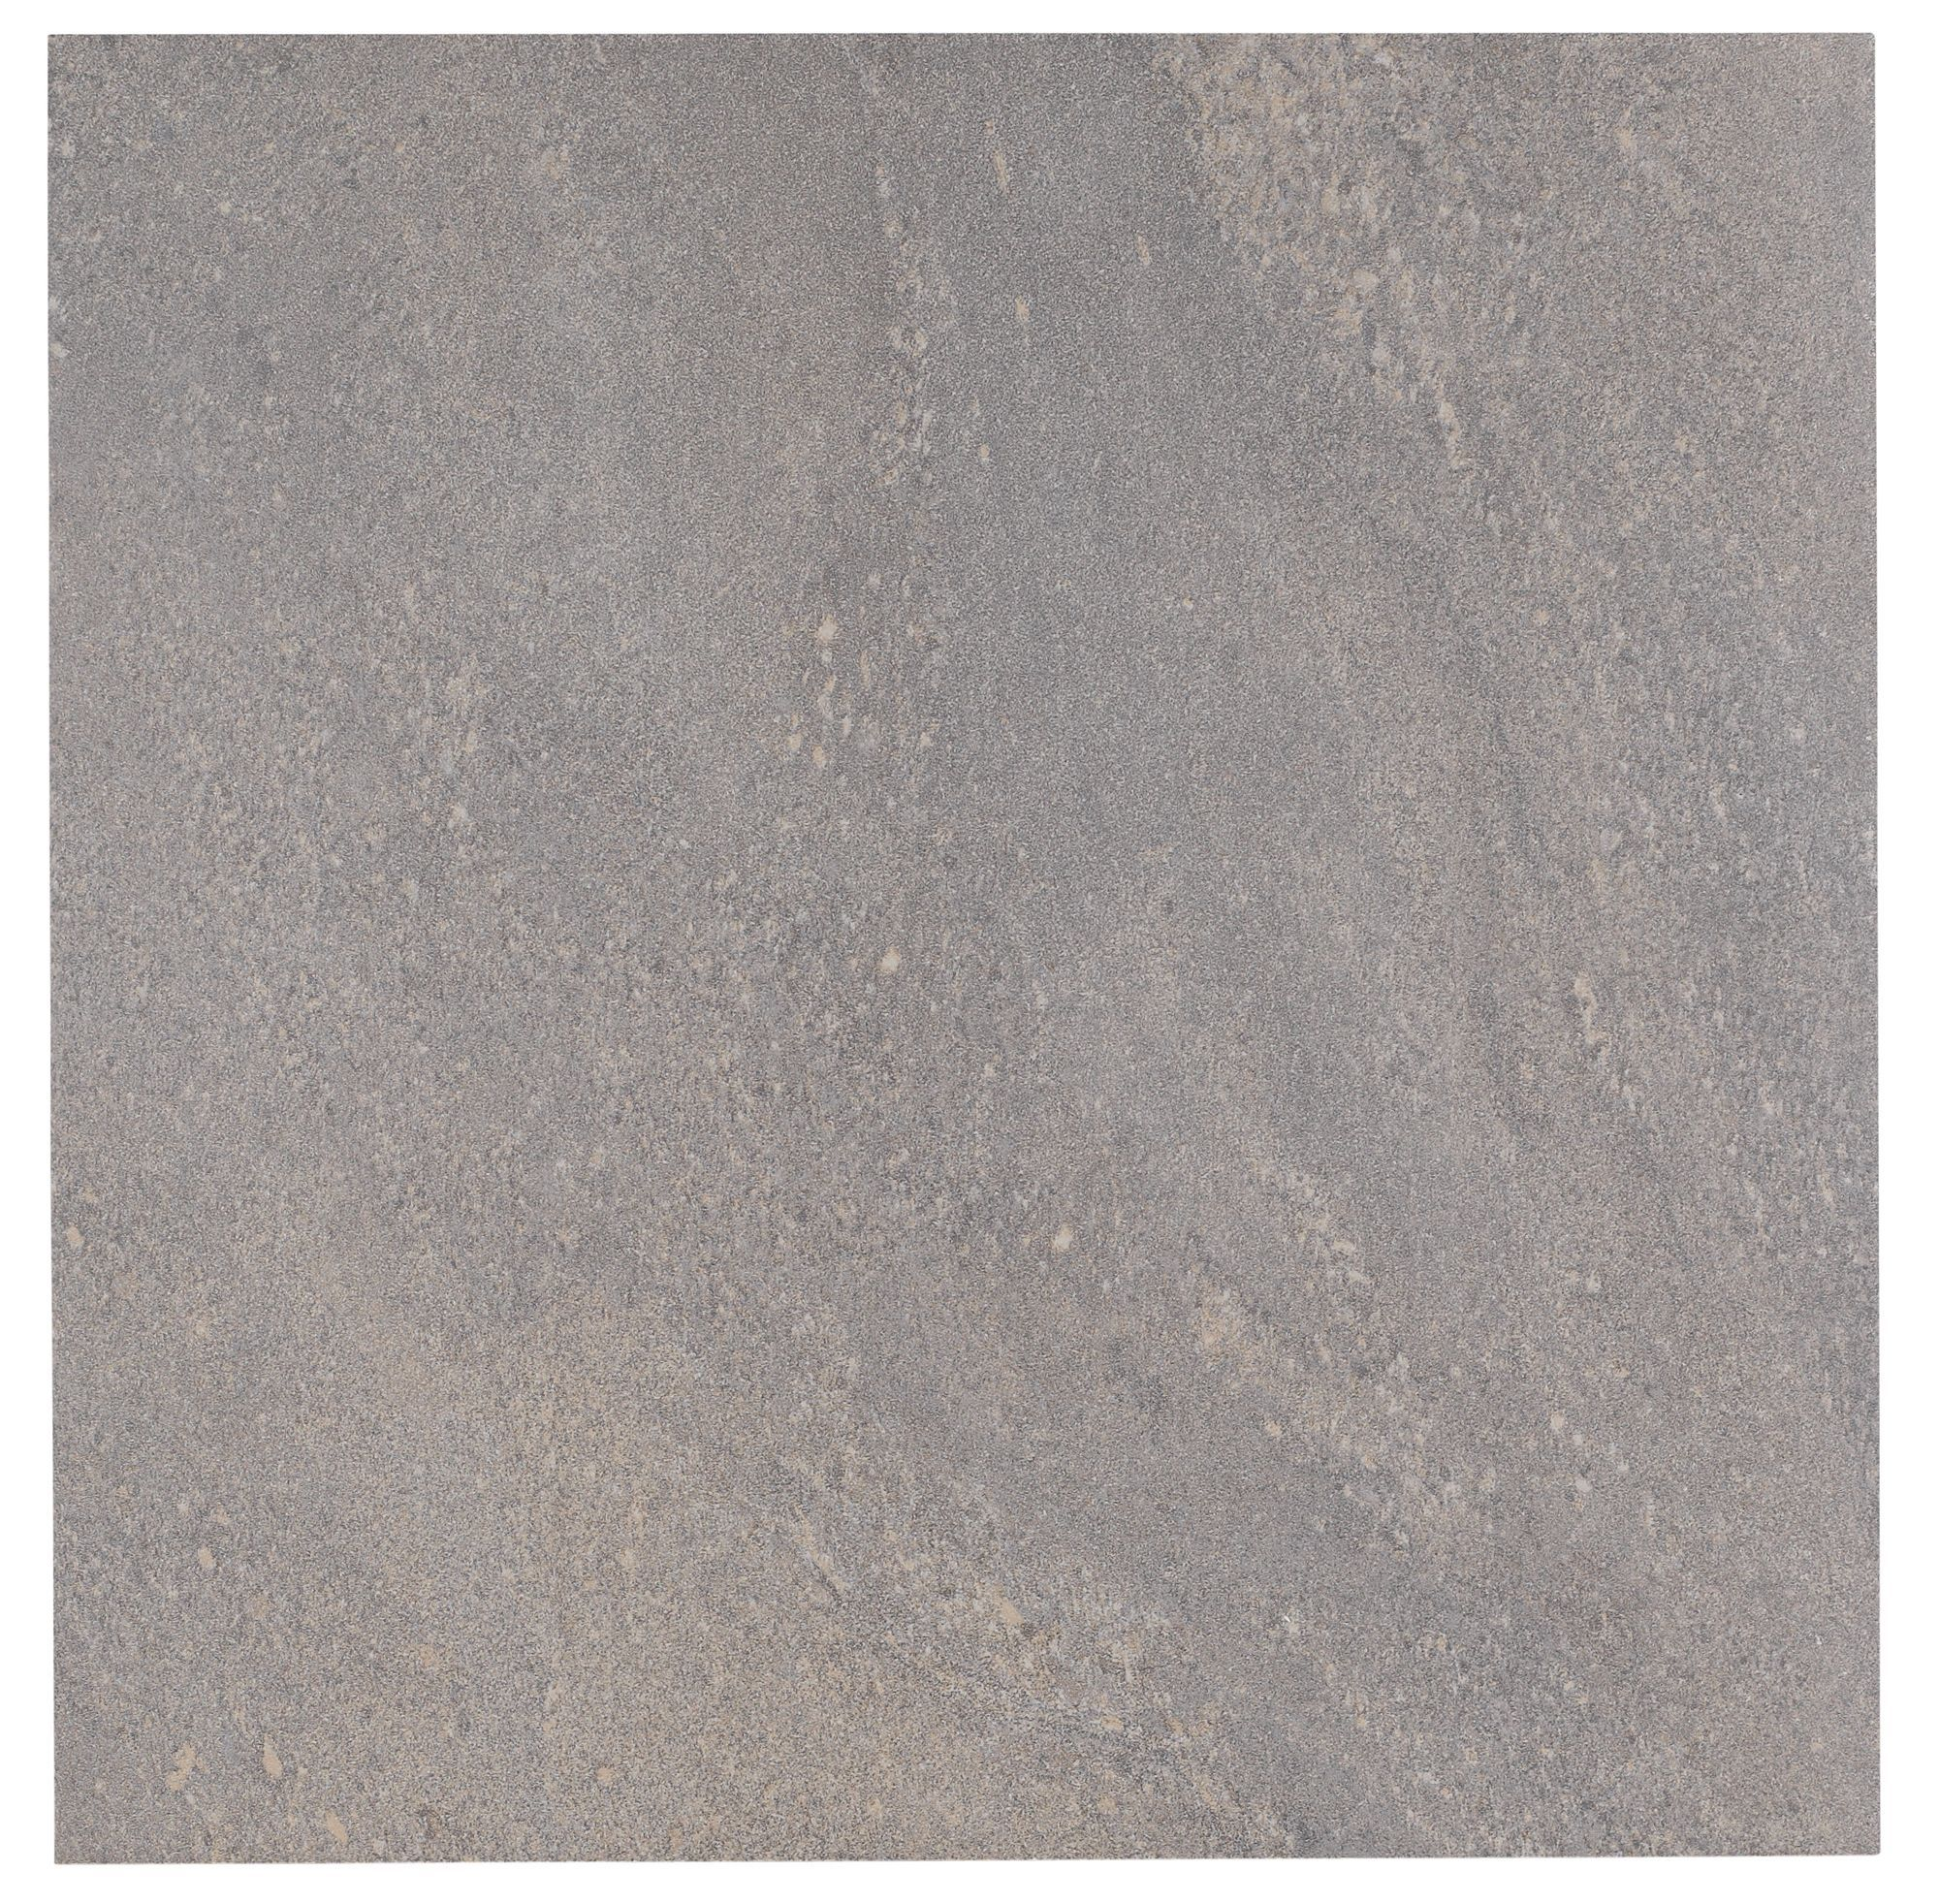 Antayla grey stone effect stone porcelain floor tile pack for Ceramic flooring